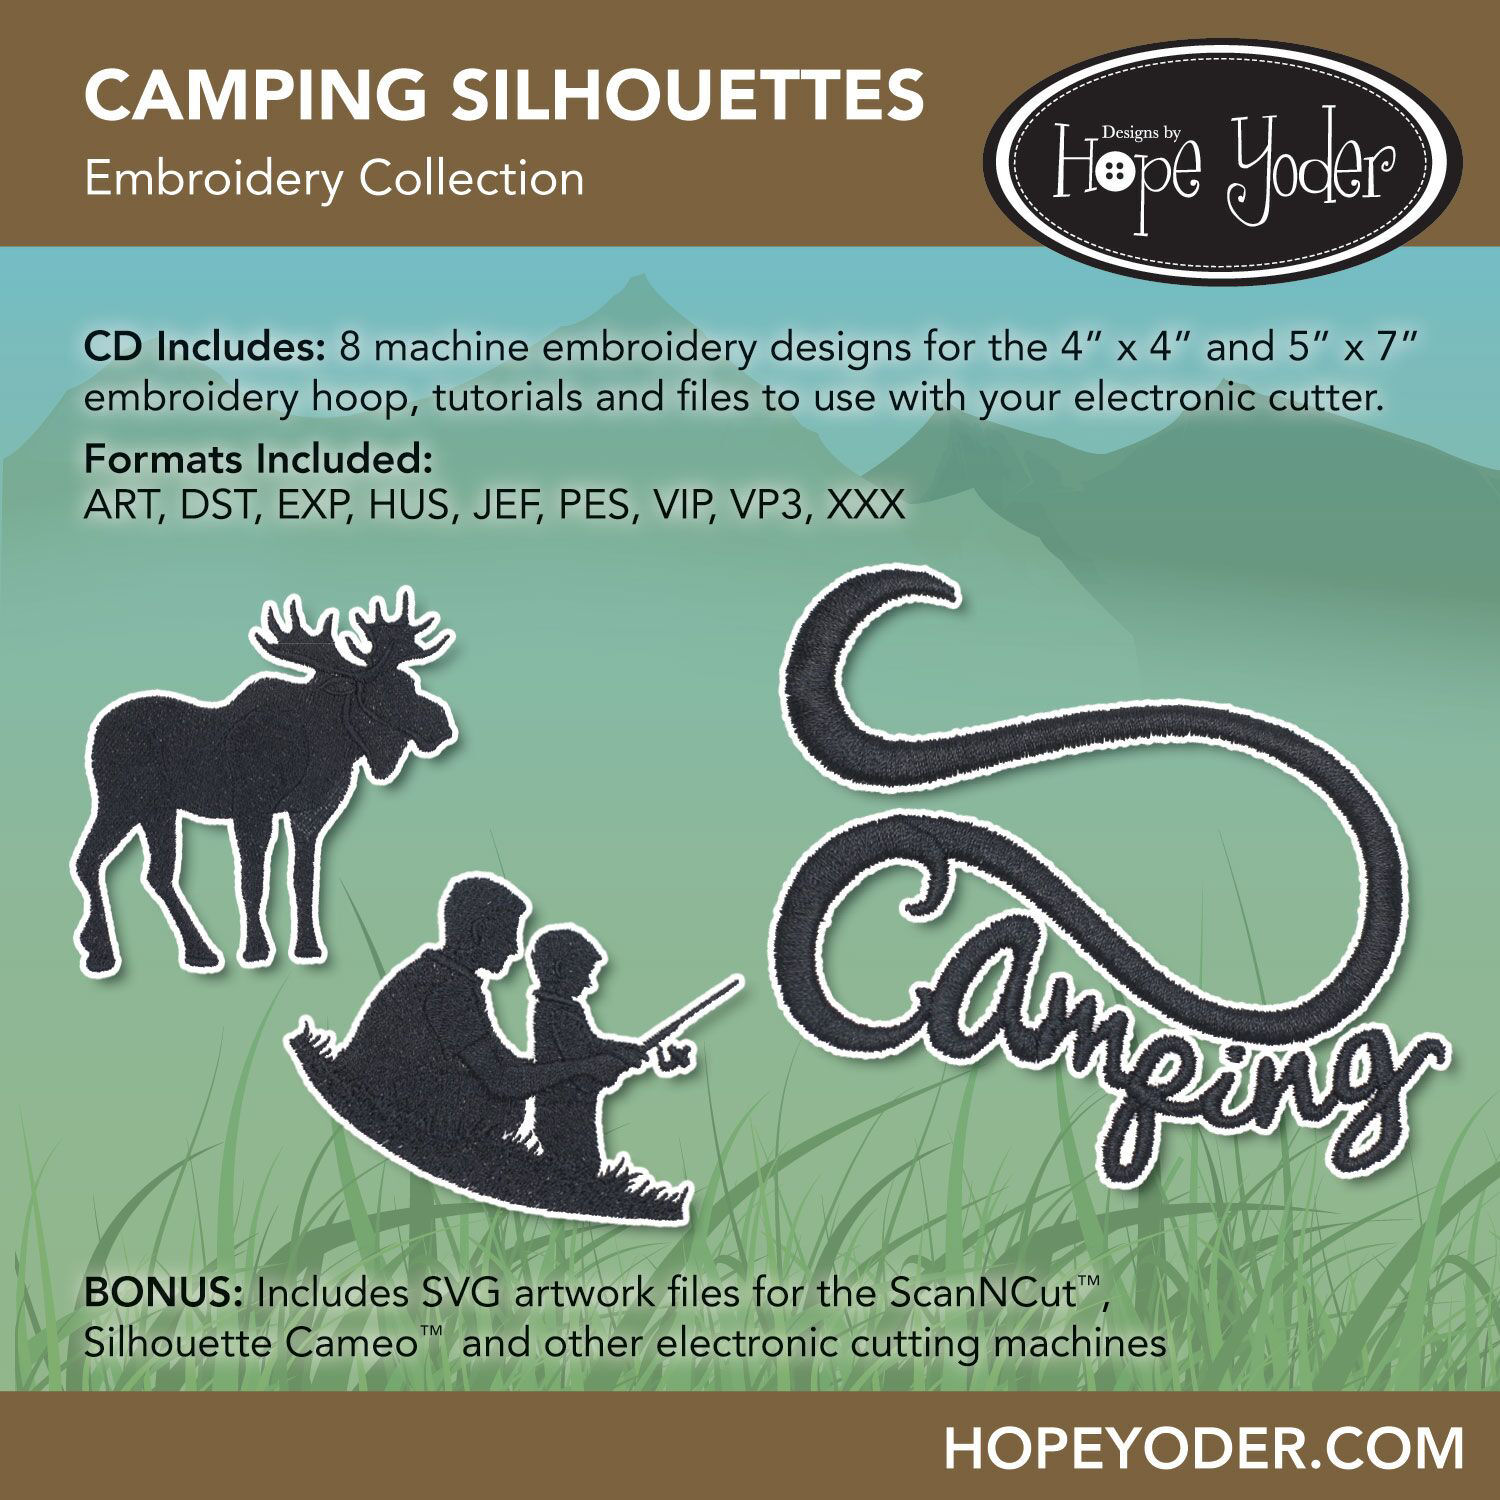 Camping Silhouettes Embroidery CD with SVG Files